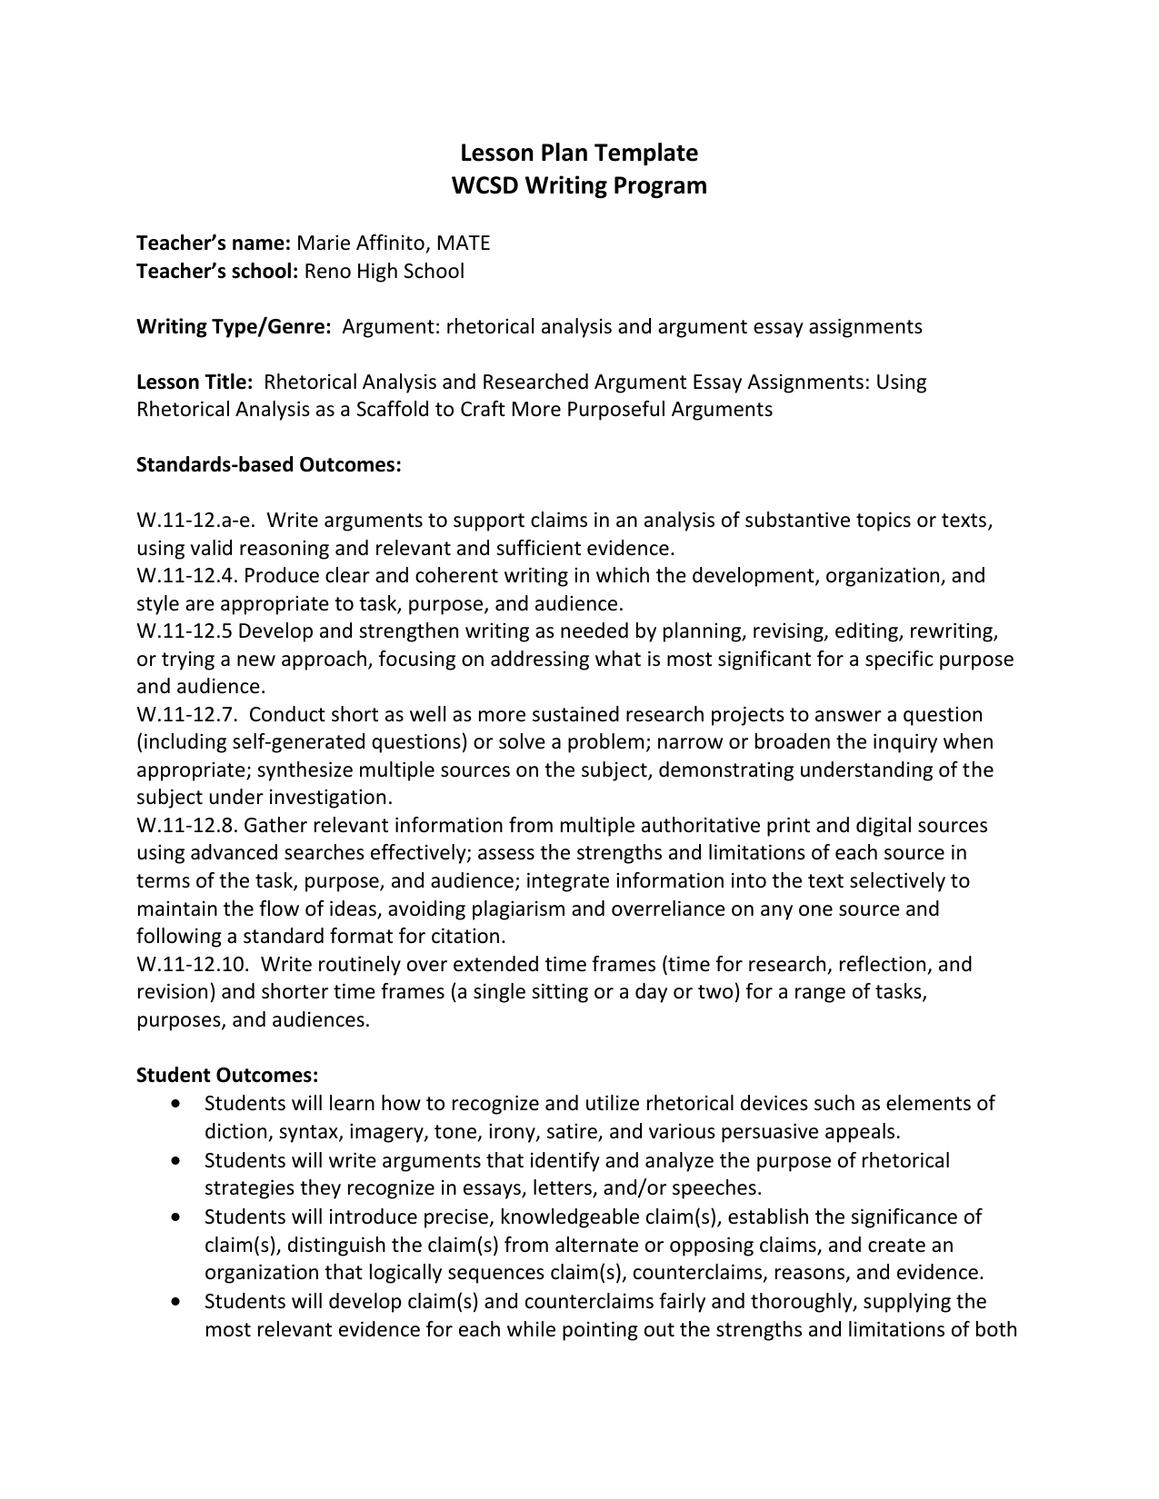 rhetorical questions in essays good rhetorical analysis essays  rhetorical analysis and researched argument essay assignments by rhetorical analysis and researched argument essay assignments by